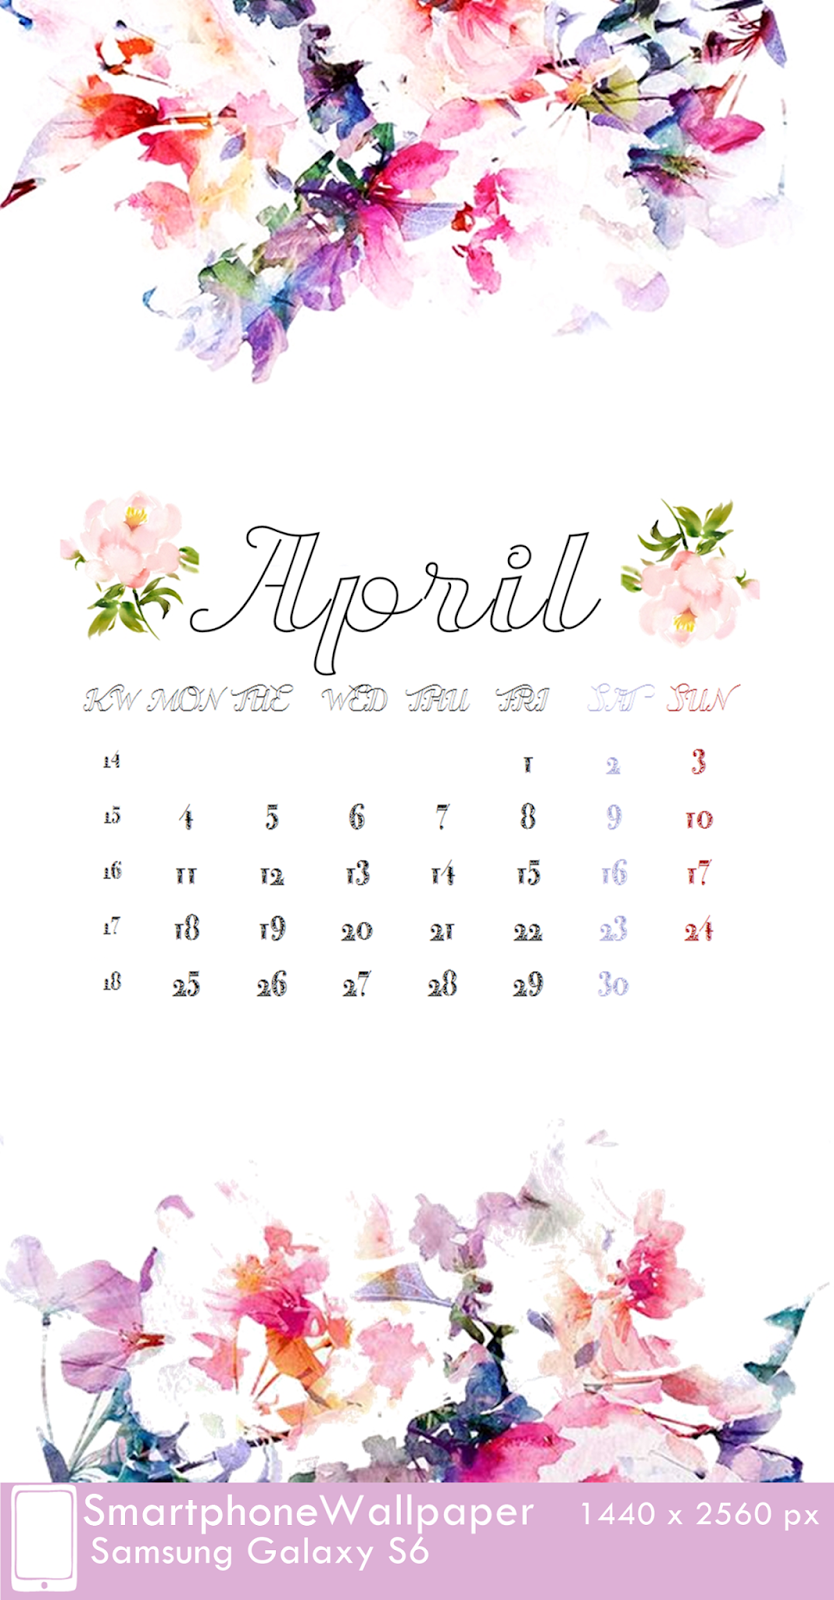 Samsung Galaxy S6 Wallpaper Calendar April 2016 fest 1440 x 2560 px